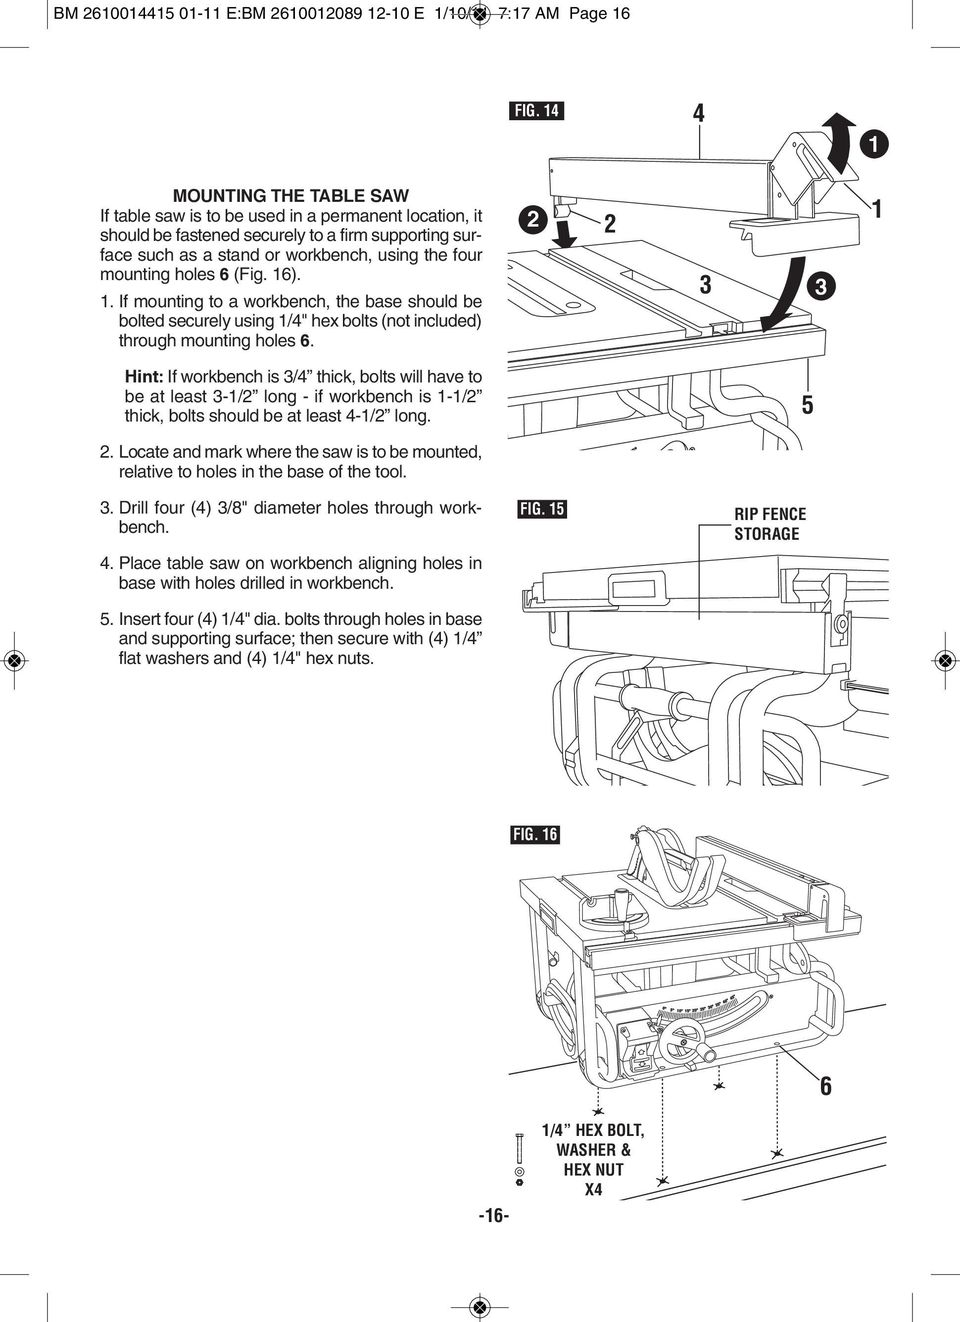 "6 (Fig. 6).. If mounting to a workbench, the base should be bolted securely using /4"" hex bolts (not included) through mounting holes 6."